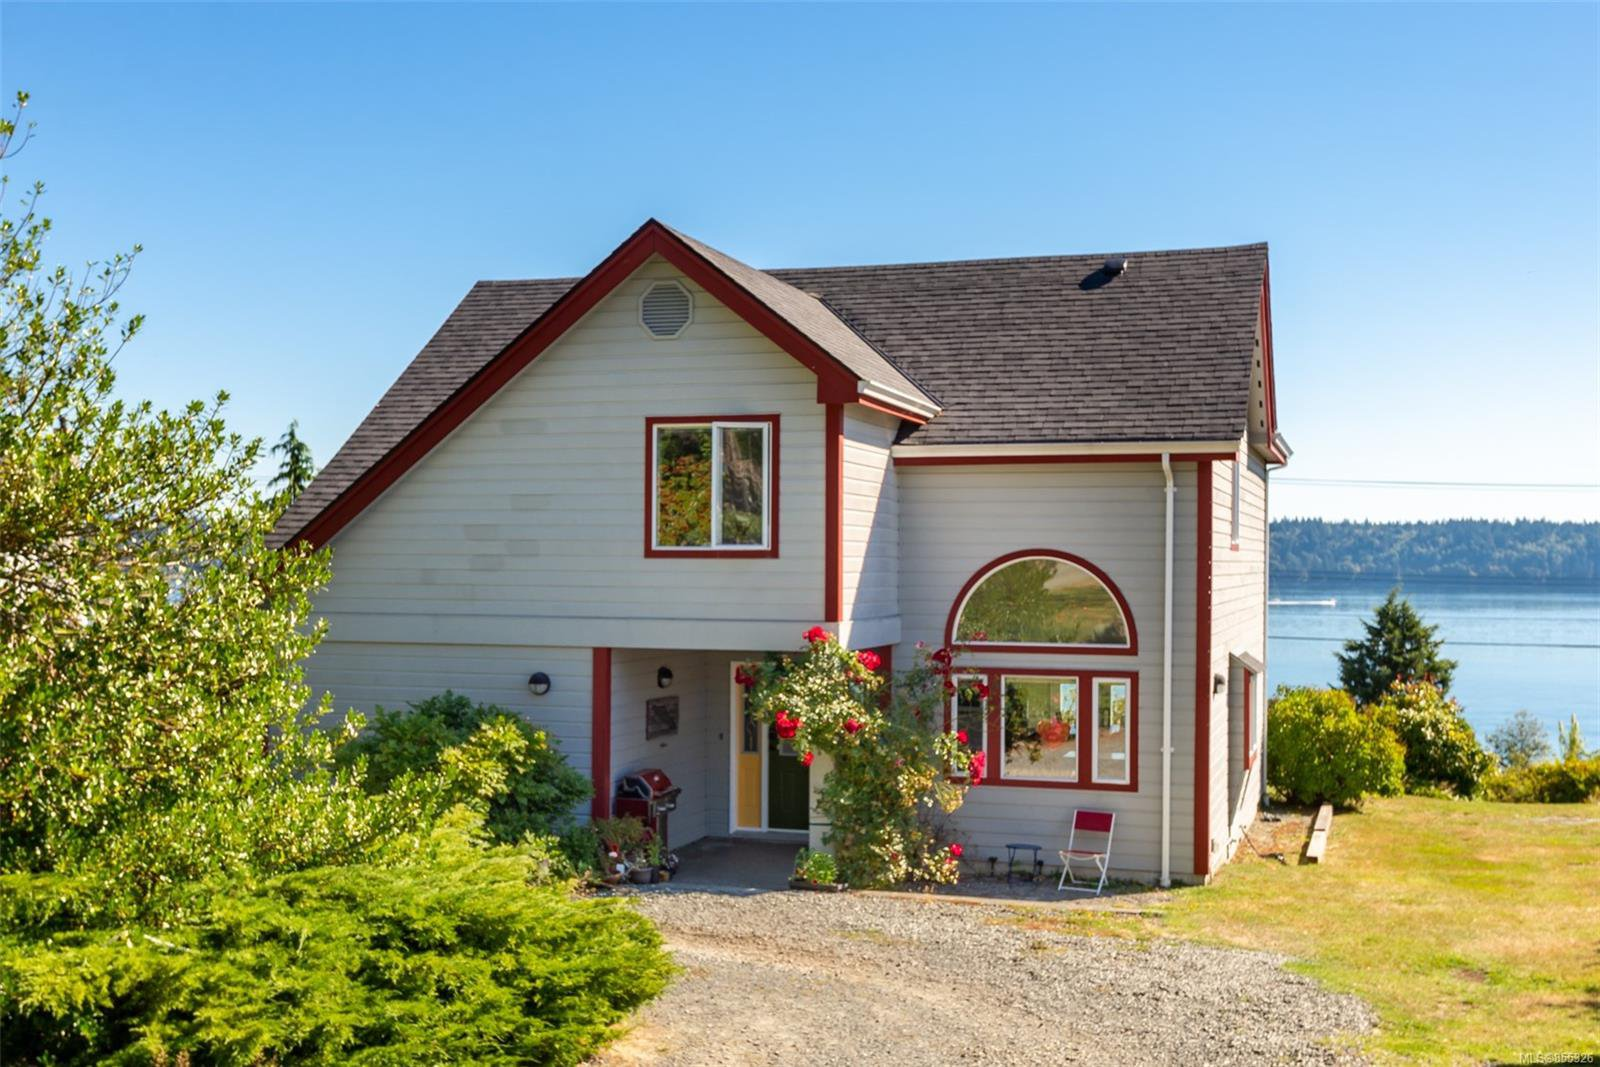 Main Photo: 342 Island Hwy in : CR Campbell River Central House for sale (Campbell River)  : MLS®# 855326